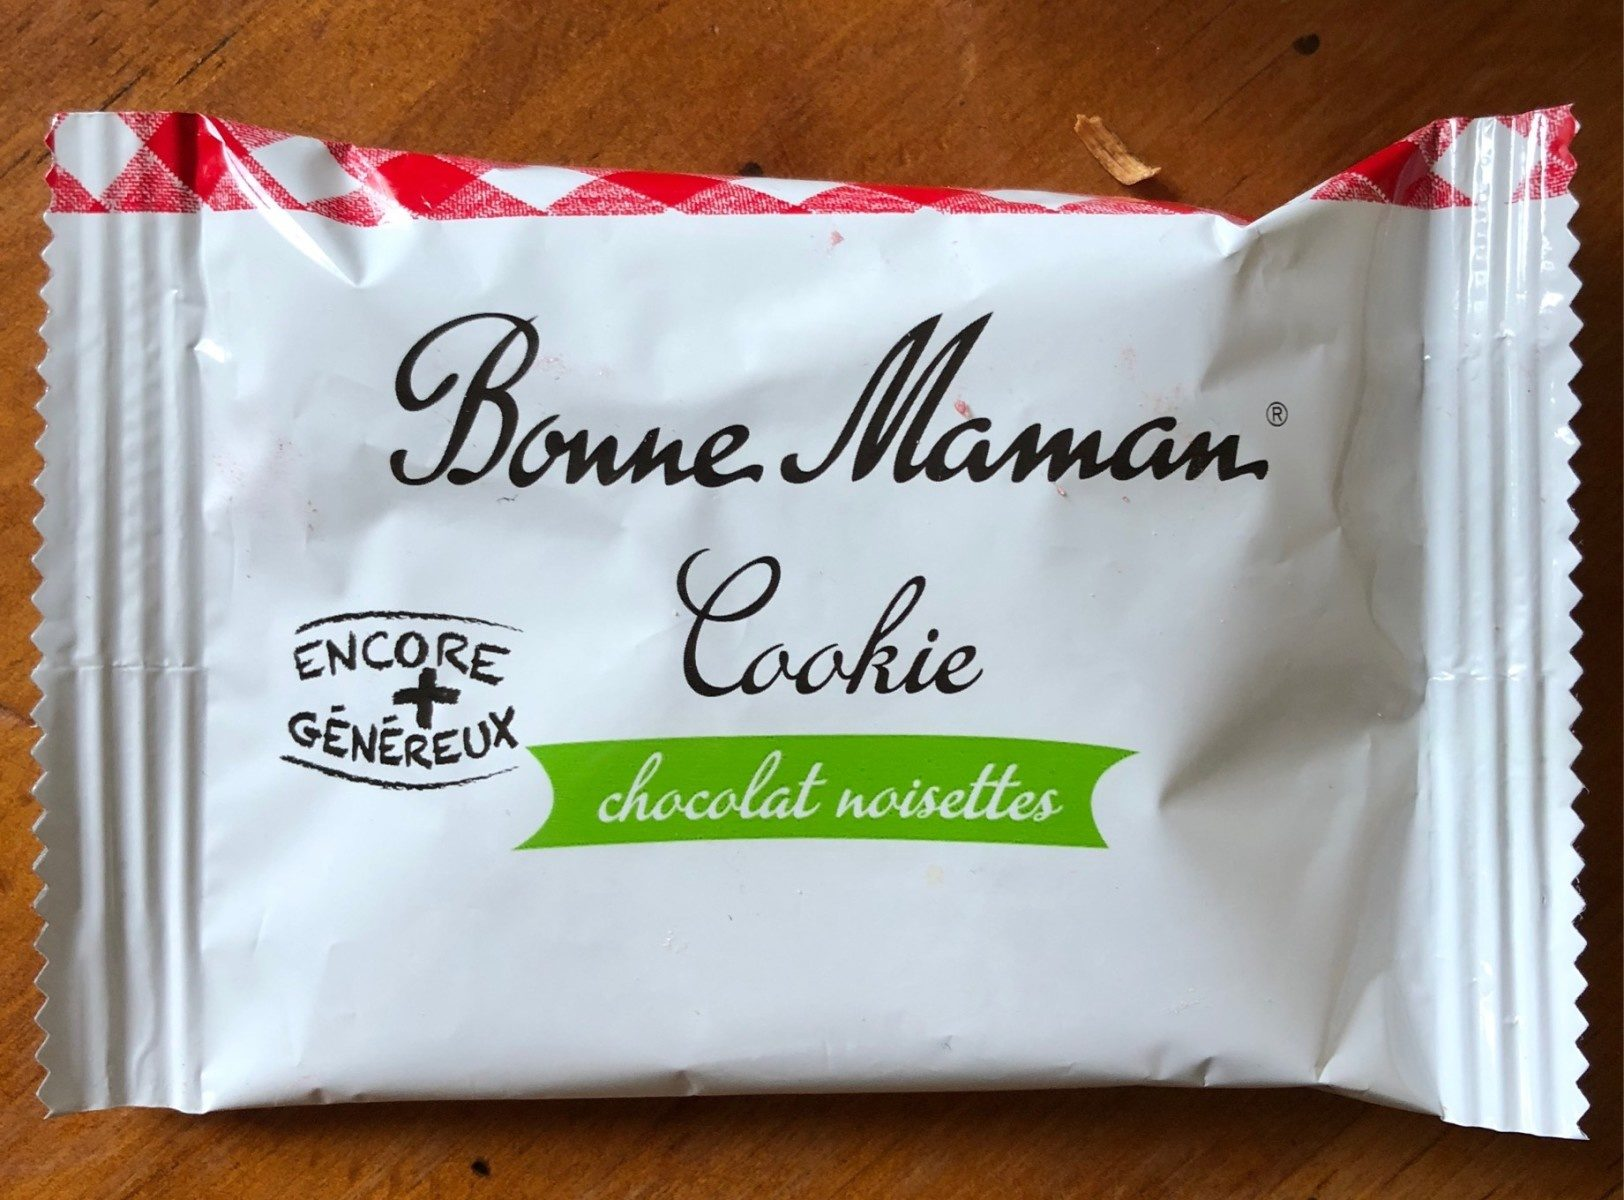 Cookie chocolat noisettes - Product - fr